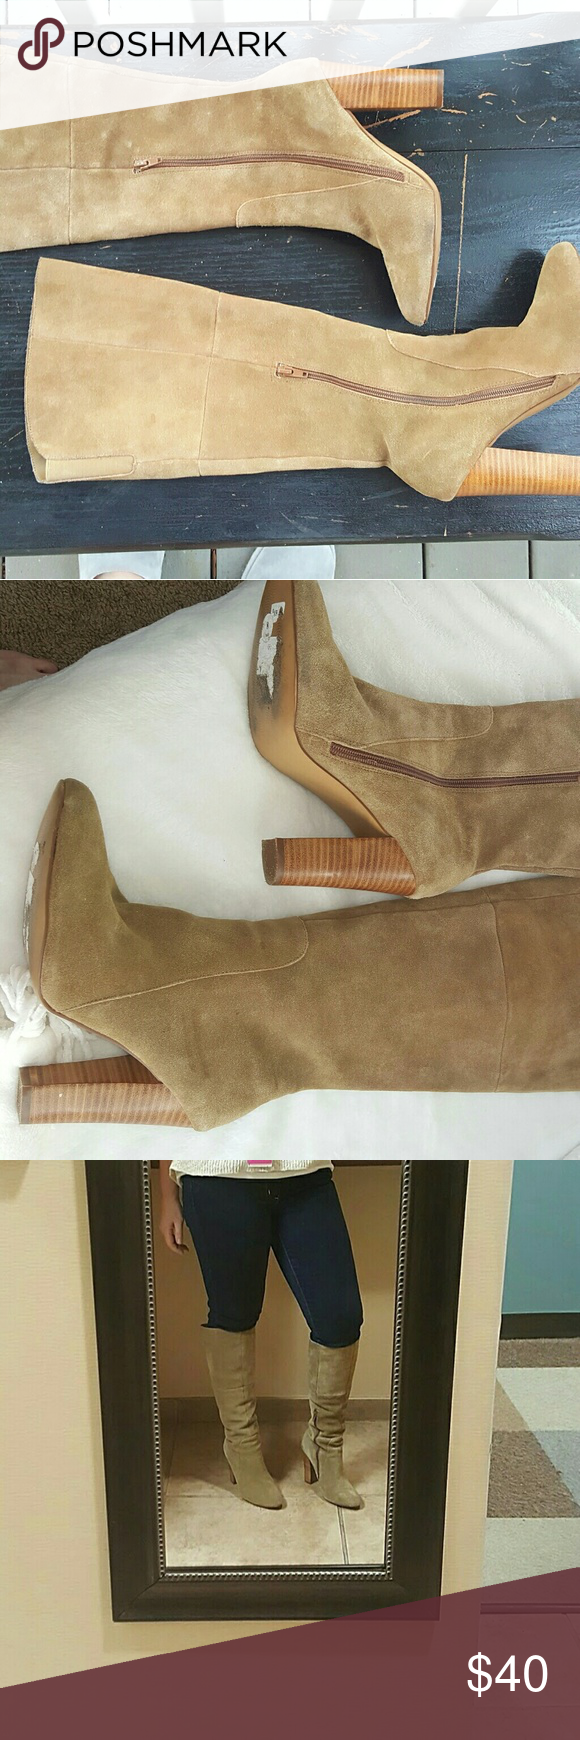 """Cynthia Rowley Suede Boots Worn 2x, perfect condition camel suede boots, classic, 4.25"""" stacked heel Partial side zip 15.25"""" shaft Lightly padded footbed. 16"""" circumference at the top. Elastic gore for a little added room at the top. Cynthia Rowley Shoes Heeled Boots"""